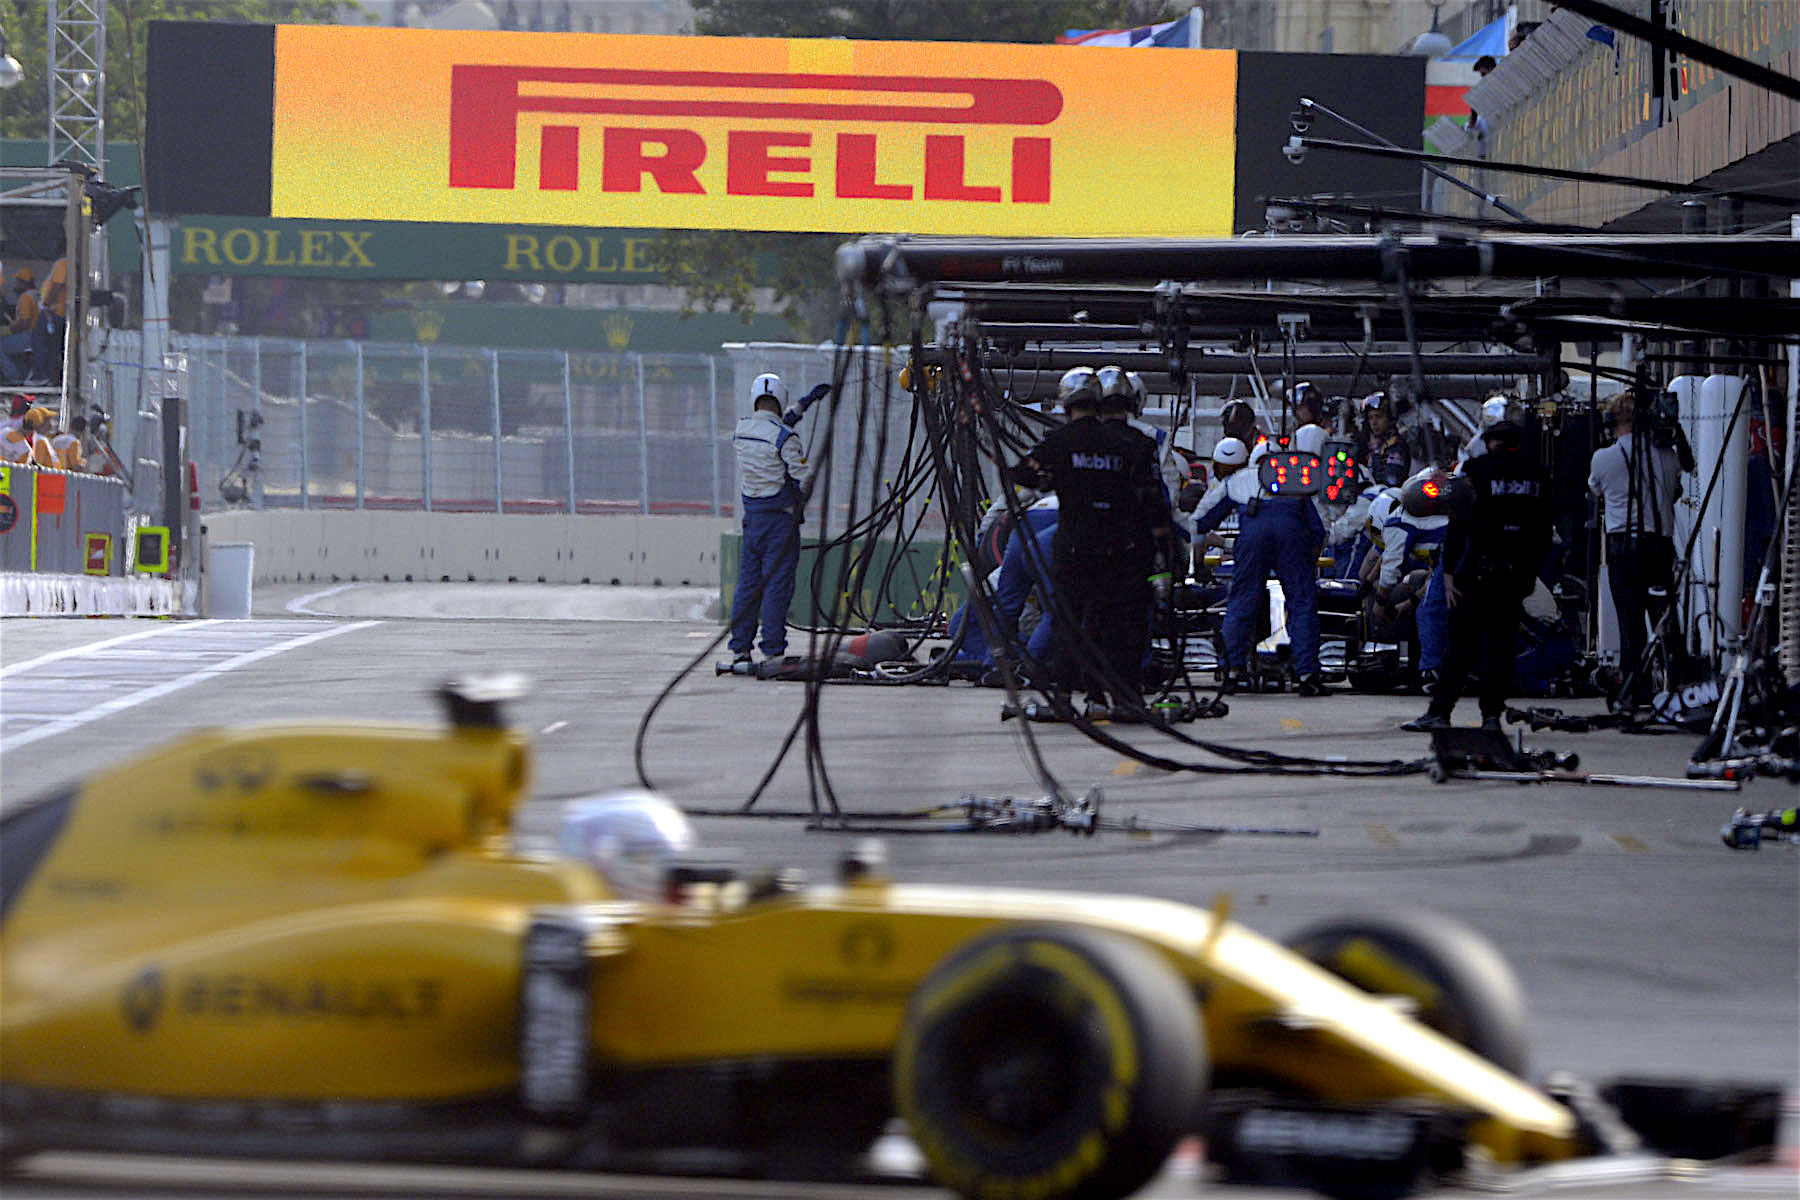 Salracing | Sauber F1 Team pit stop in the background